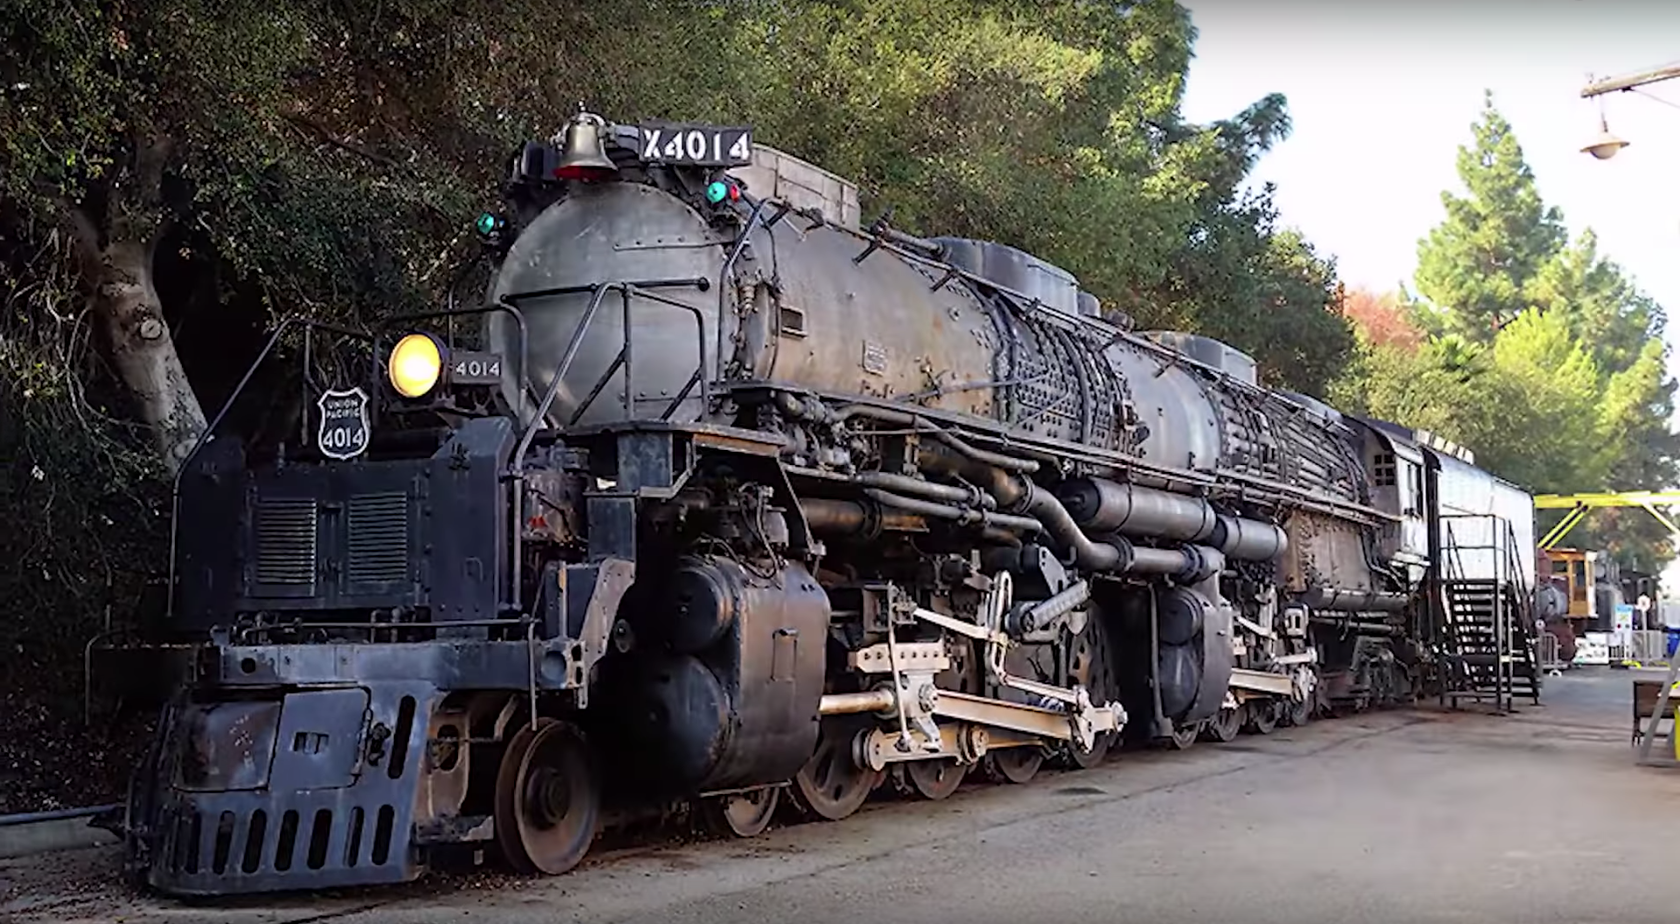 The Biggest Steam Engine In The World Just Moved Under Its Own Power For The First Time In Decades